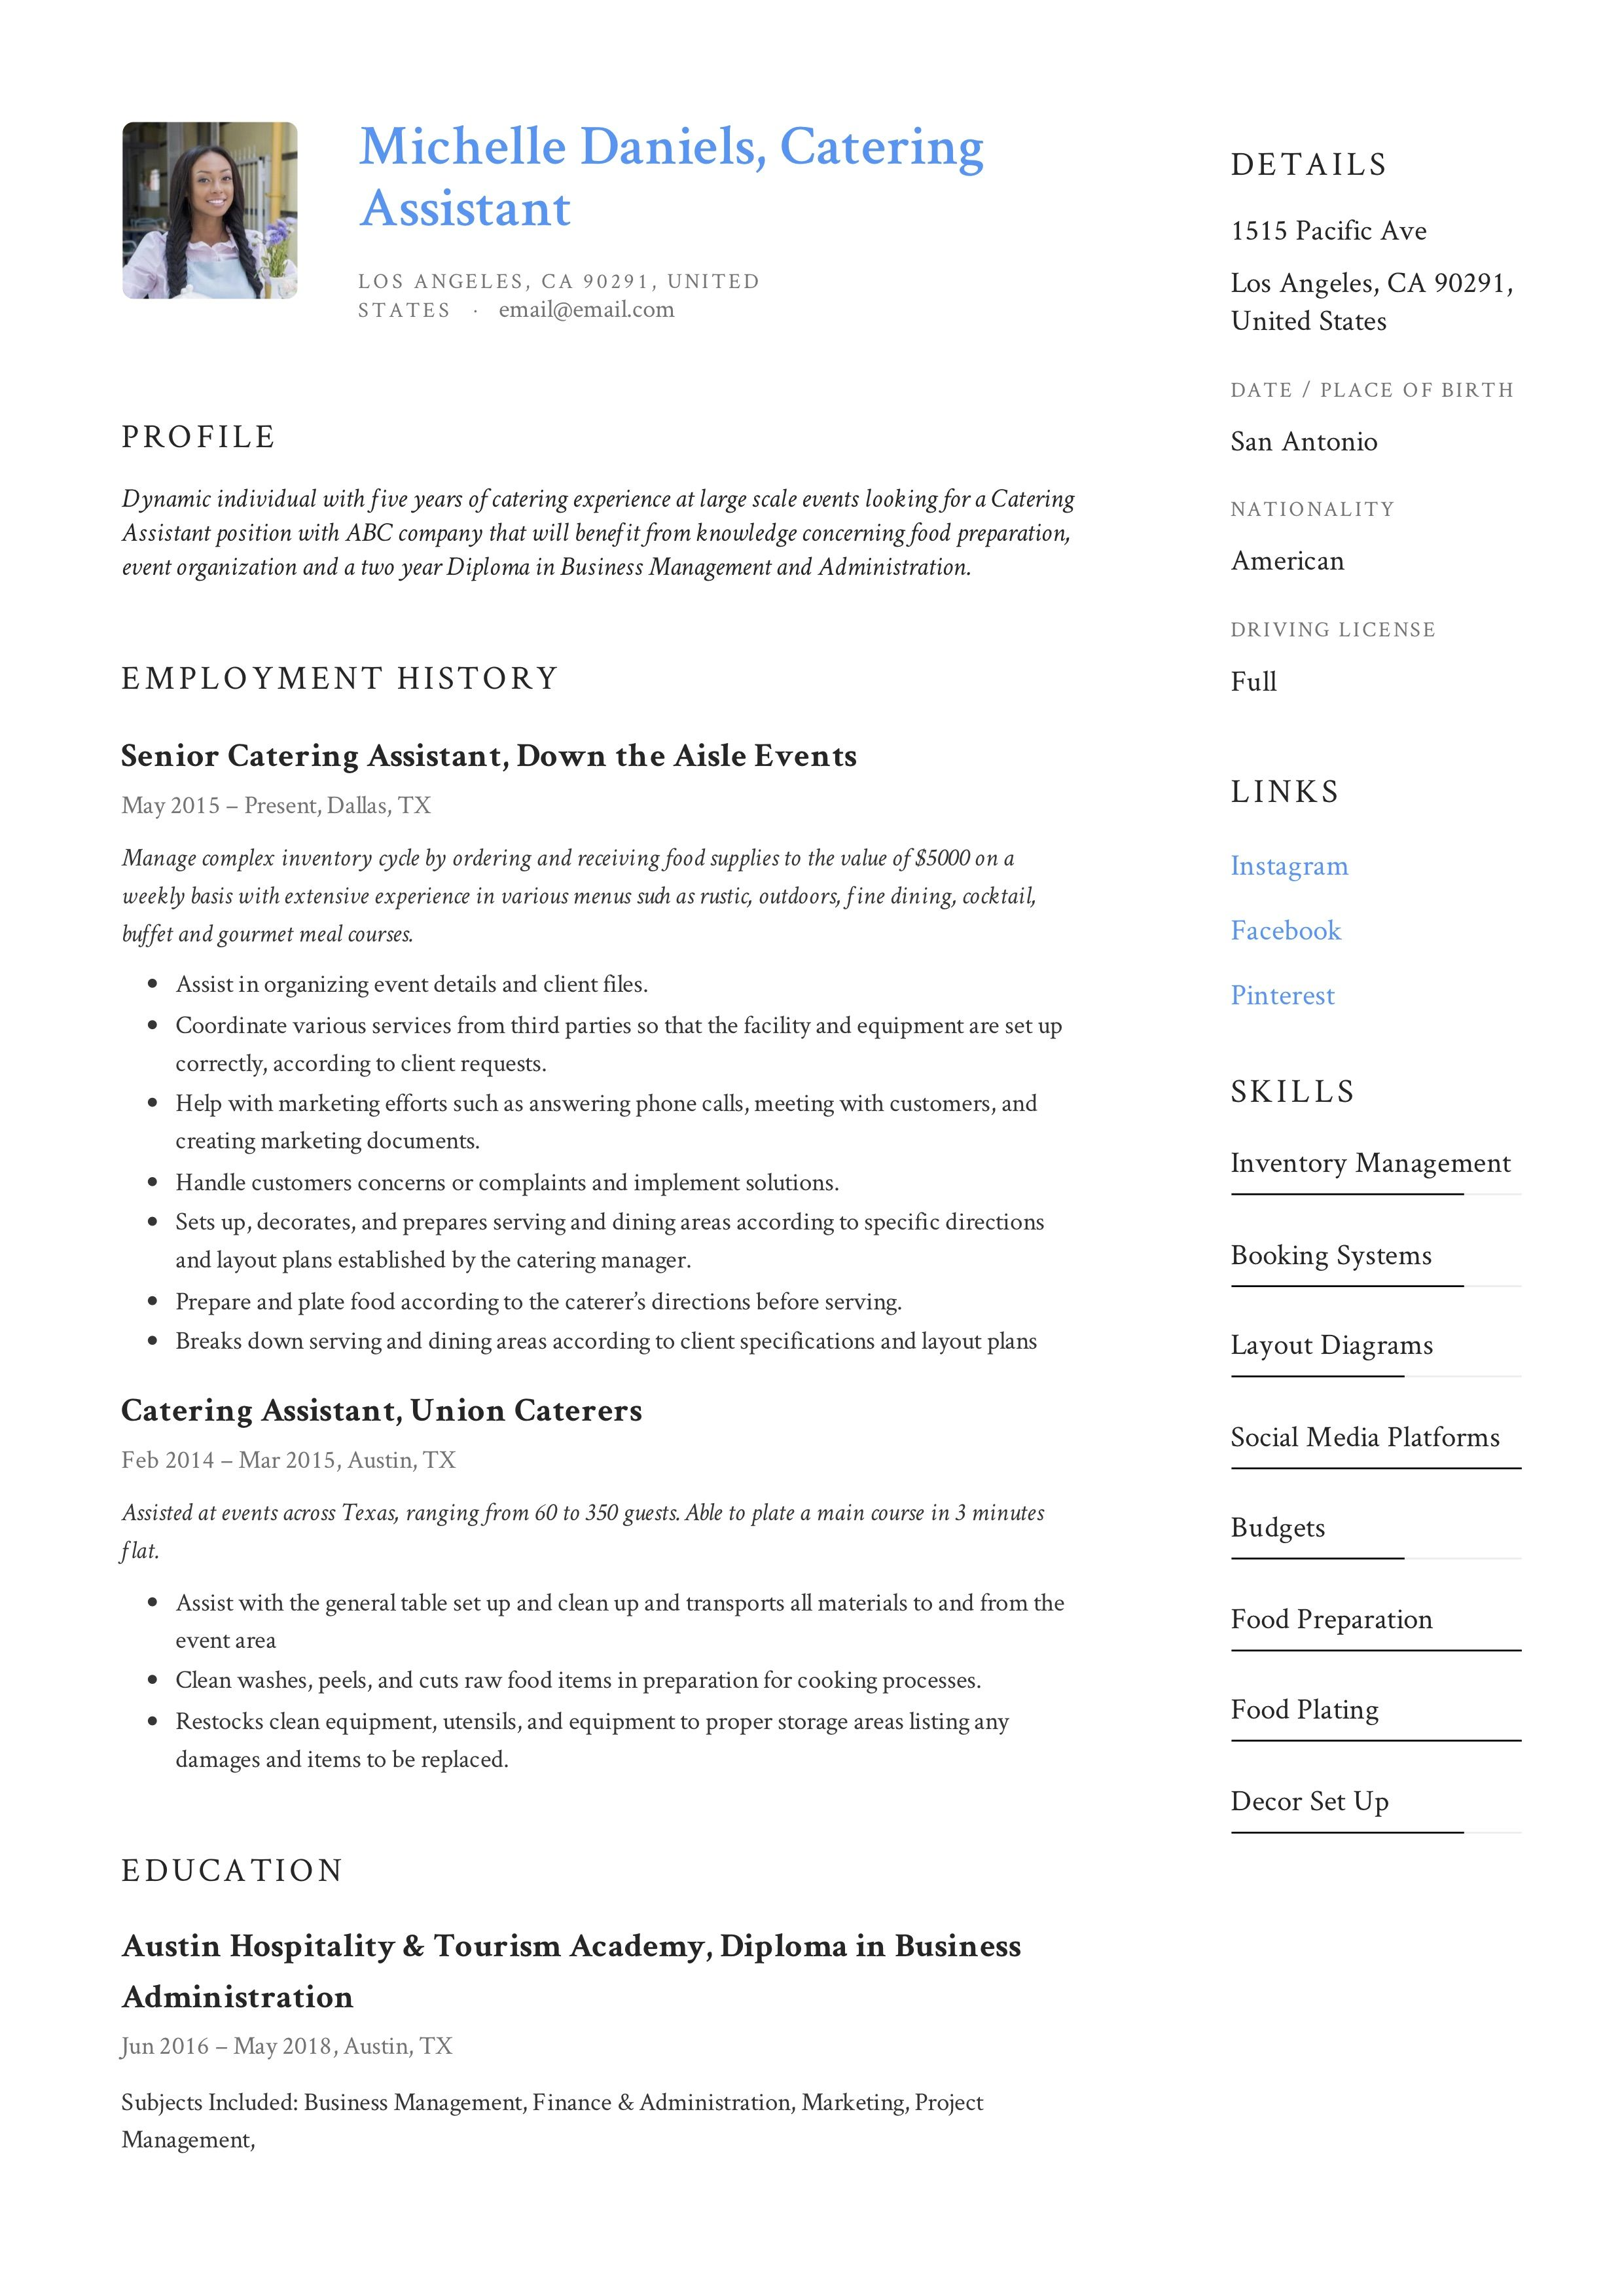 Catering Assistant Resume Example Resume Examples Catering Resume